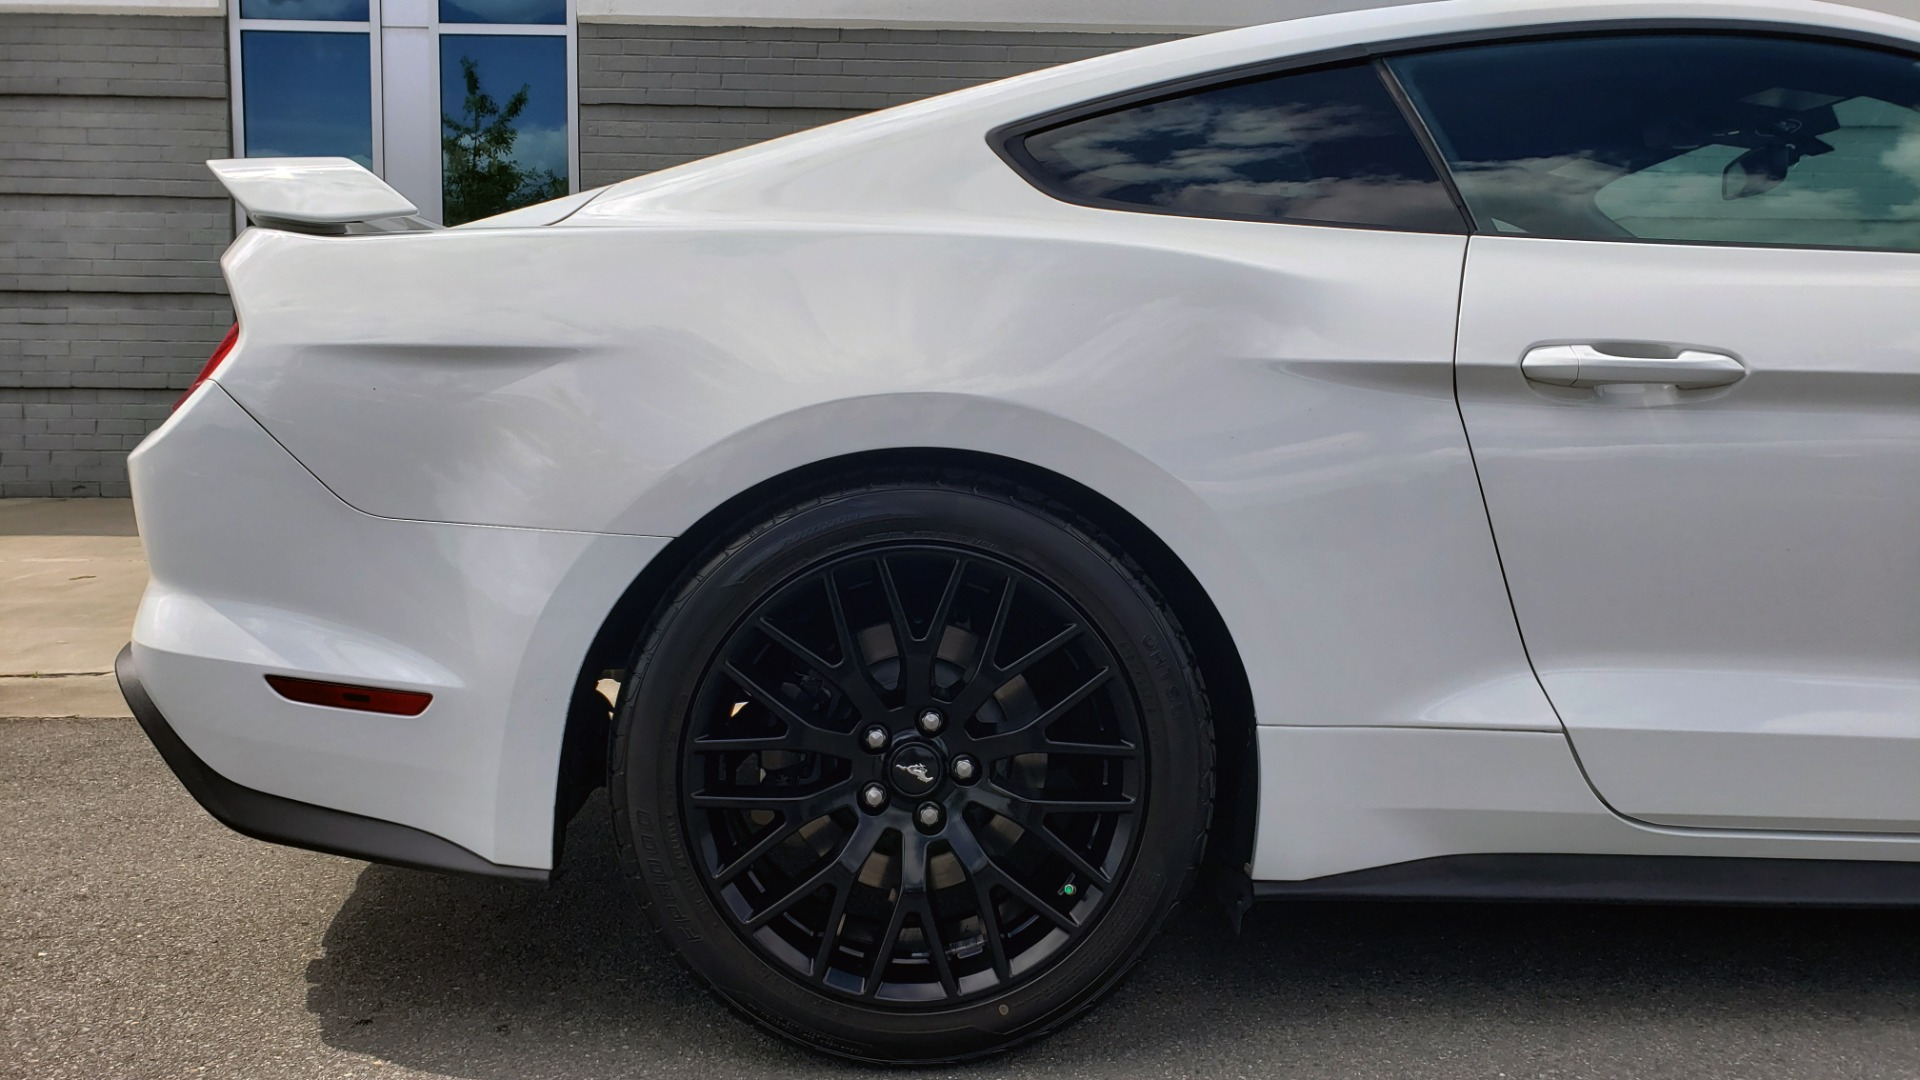 Used 2018 Ford MUSTANG GT COUPE / 5.0L V8 / AUTO / PERF PKG / REARVIEW / 19IN WHLS for sale Sold at Formula Imports in Charlotte NC 28227 69